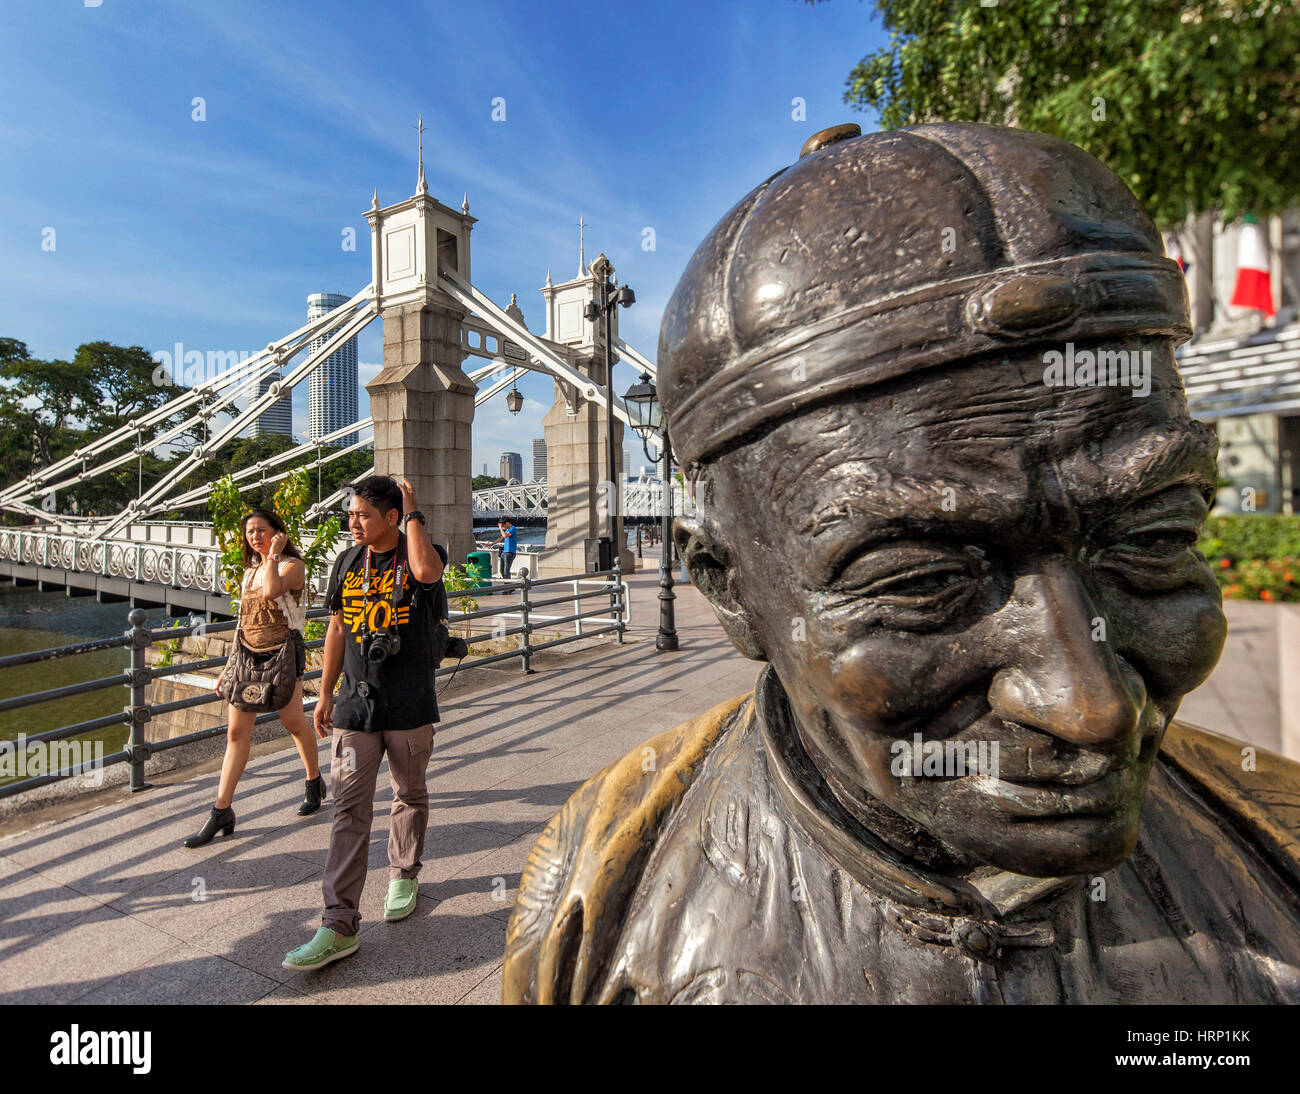 THE RIVER MERCHANT'S, bronze sculpture of Aw Tee Hong, Flint Street, Fullerton Square, Anderson Bridge, Singapore, - Stock Image